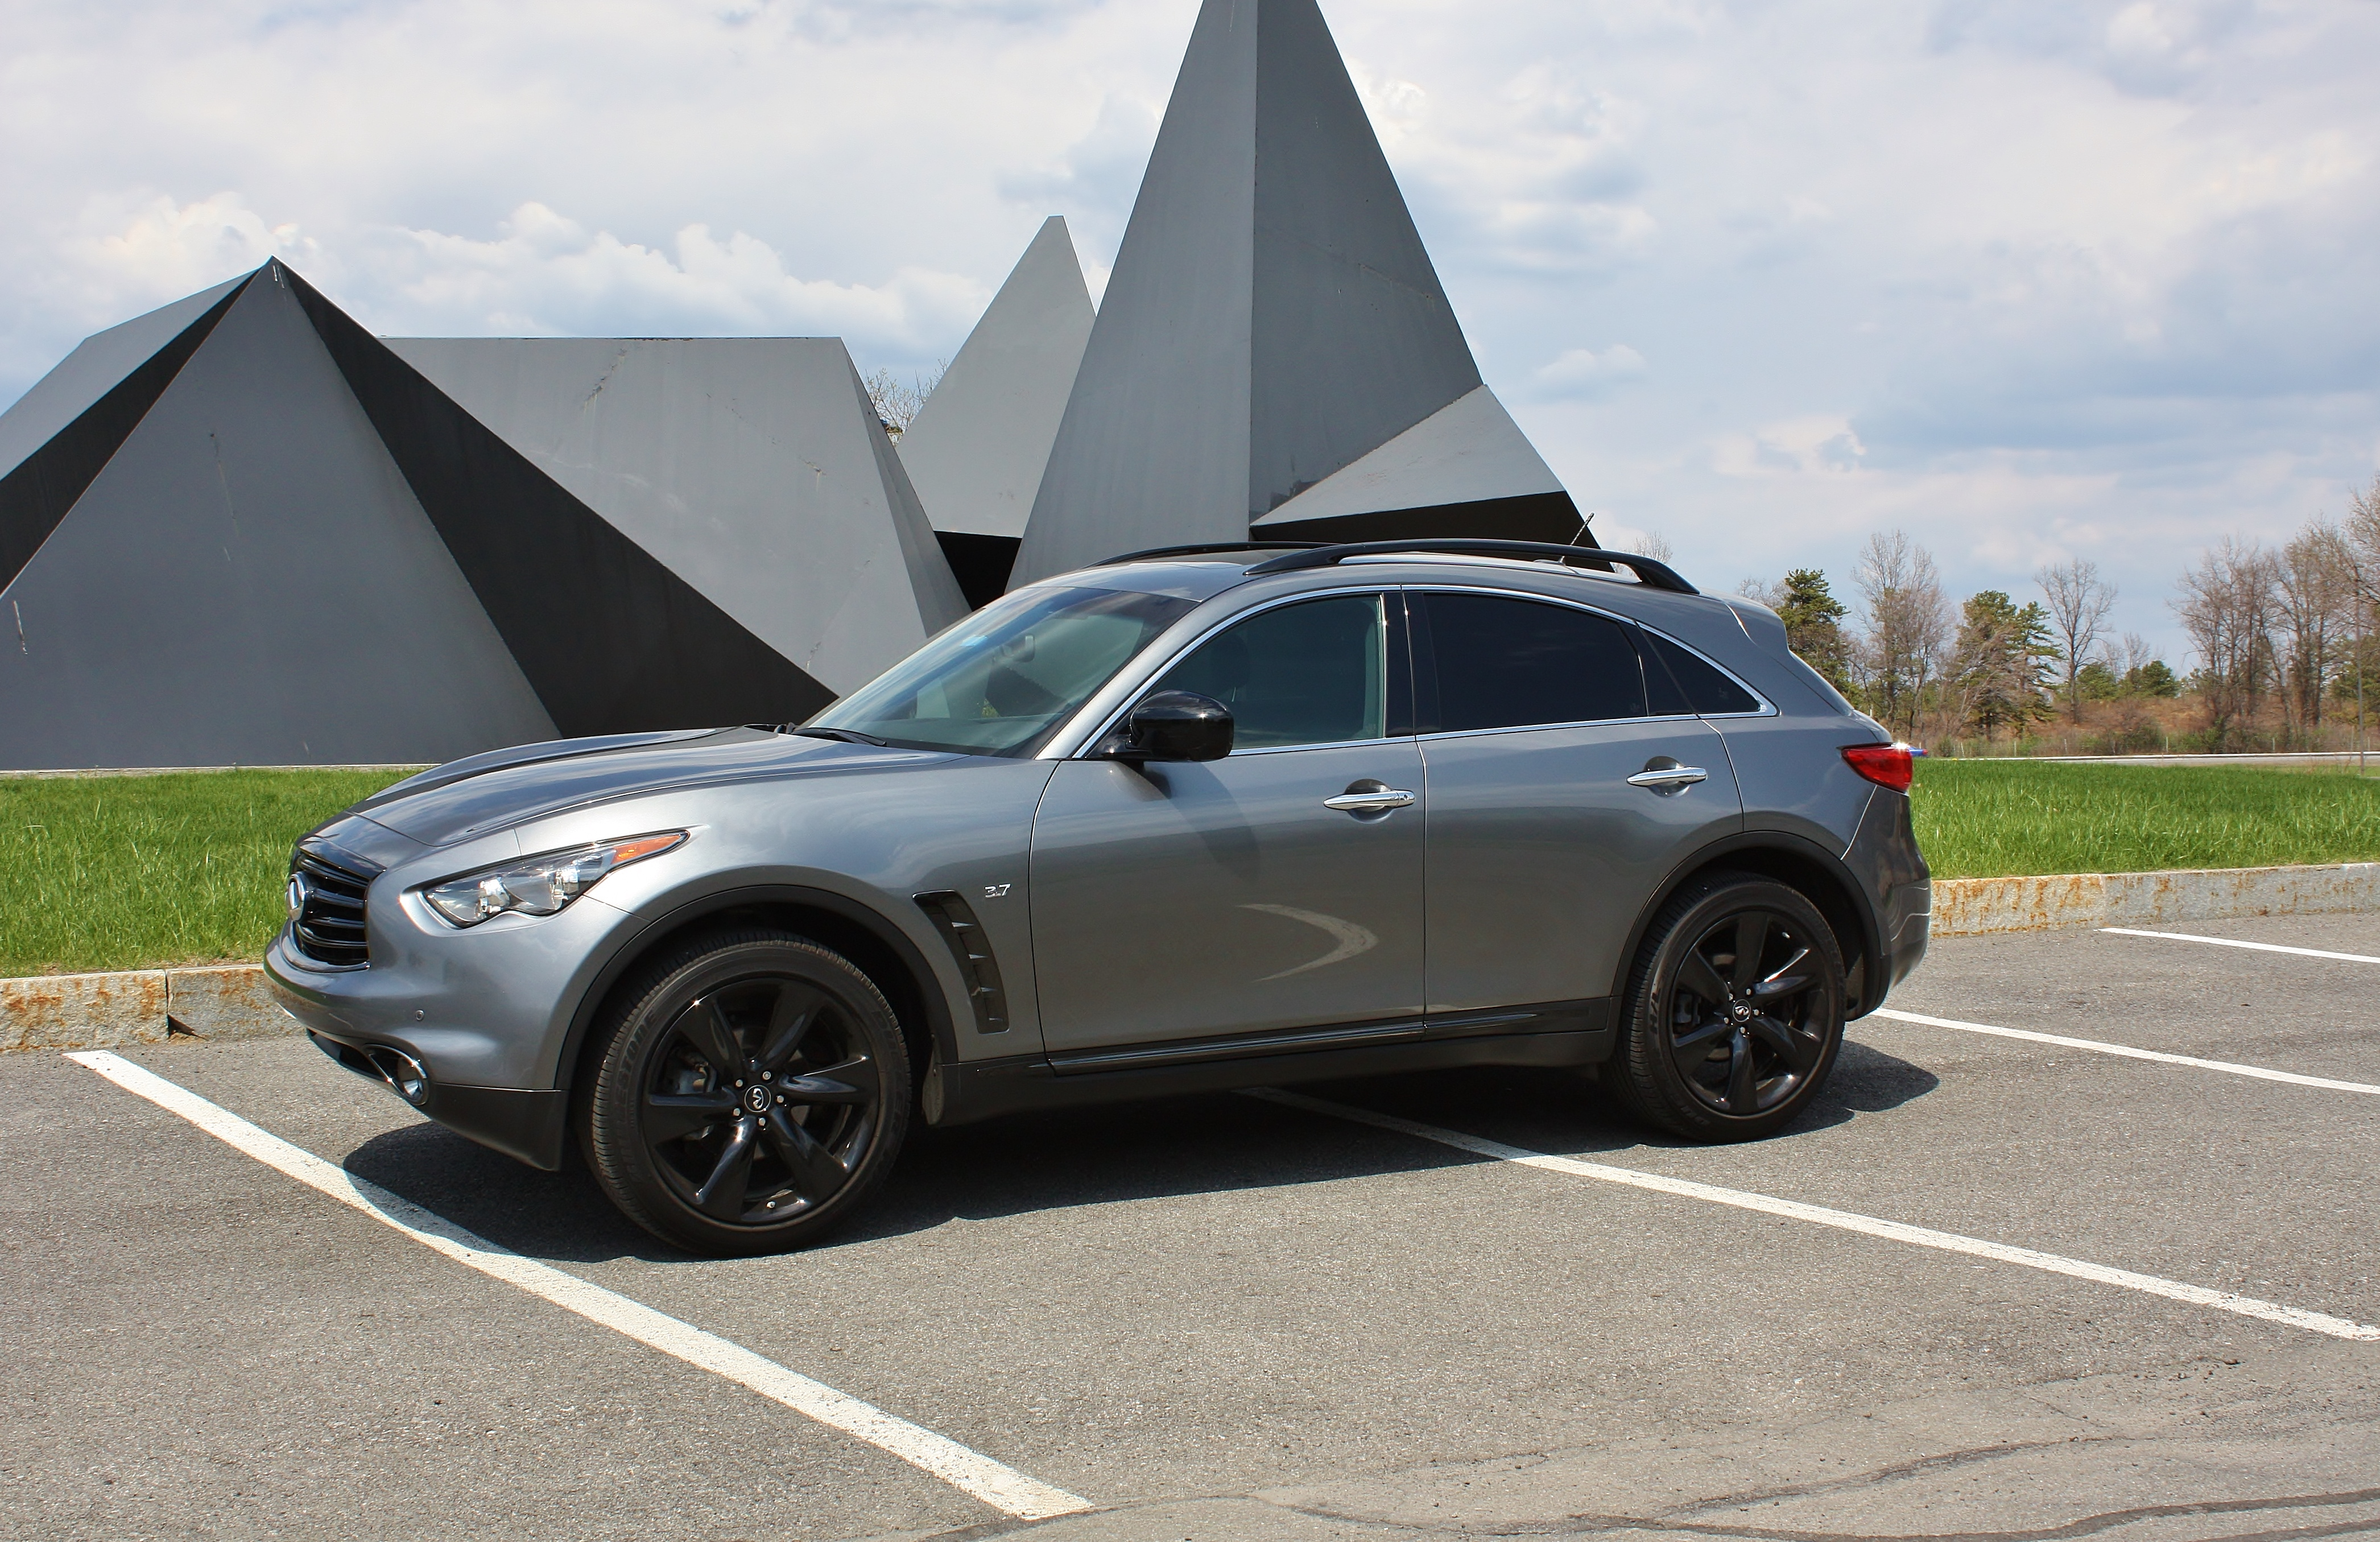 Fierce 2015 infiniti qx70 limited slip blog whereas the outside still appears modern the interior dates this infiniti its due for a redesign its not so much the design but the materials that vanachro Gallery